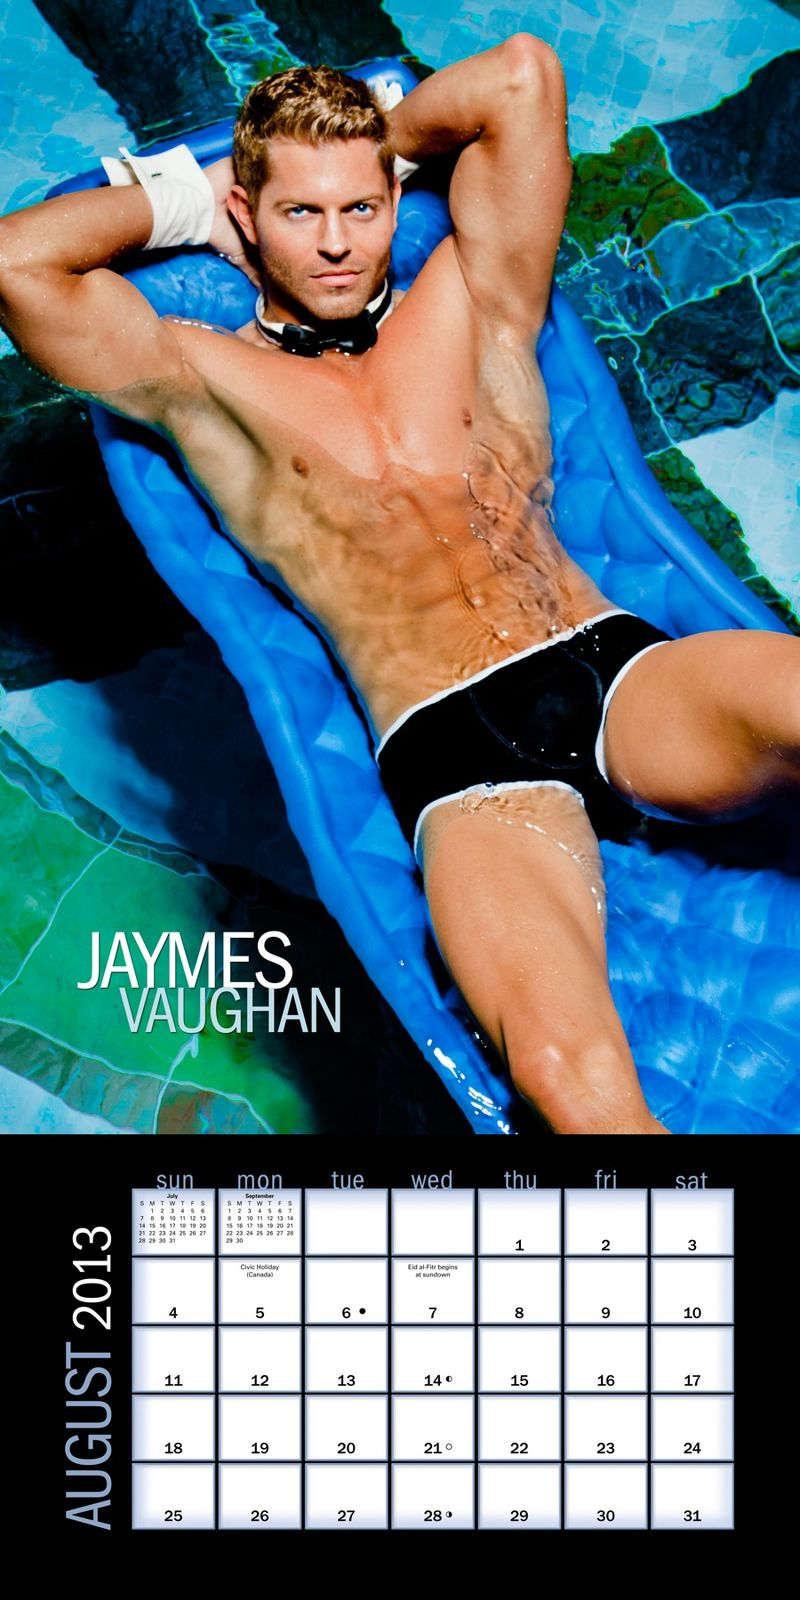 Jaymes_Vaughan_August_2013